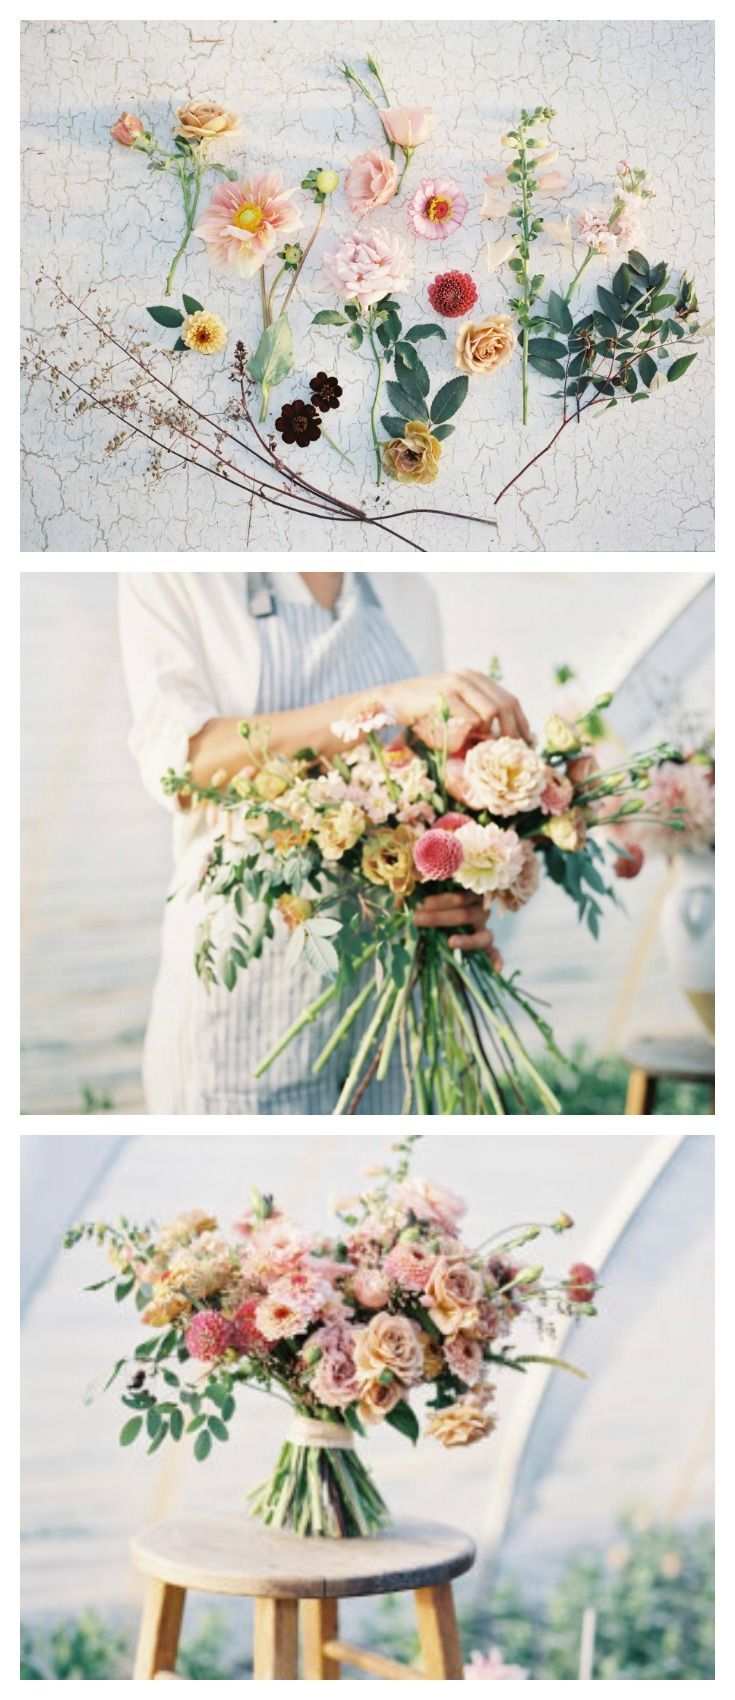 Erin Benzakein from Floret demonstrates how to create a DIY hand-tied bouquet utilizing garden favorites including dahlias, zinnias, heuchera, lisianthus, garden roses and foxglove.  Images by Heather Payne Photography.